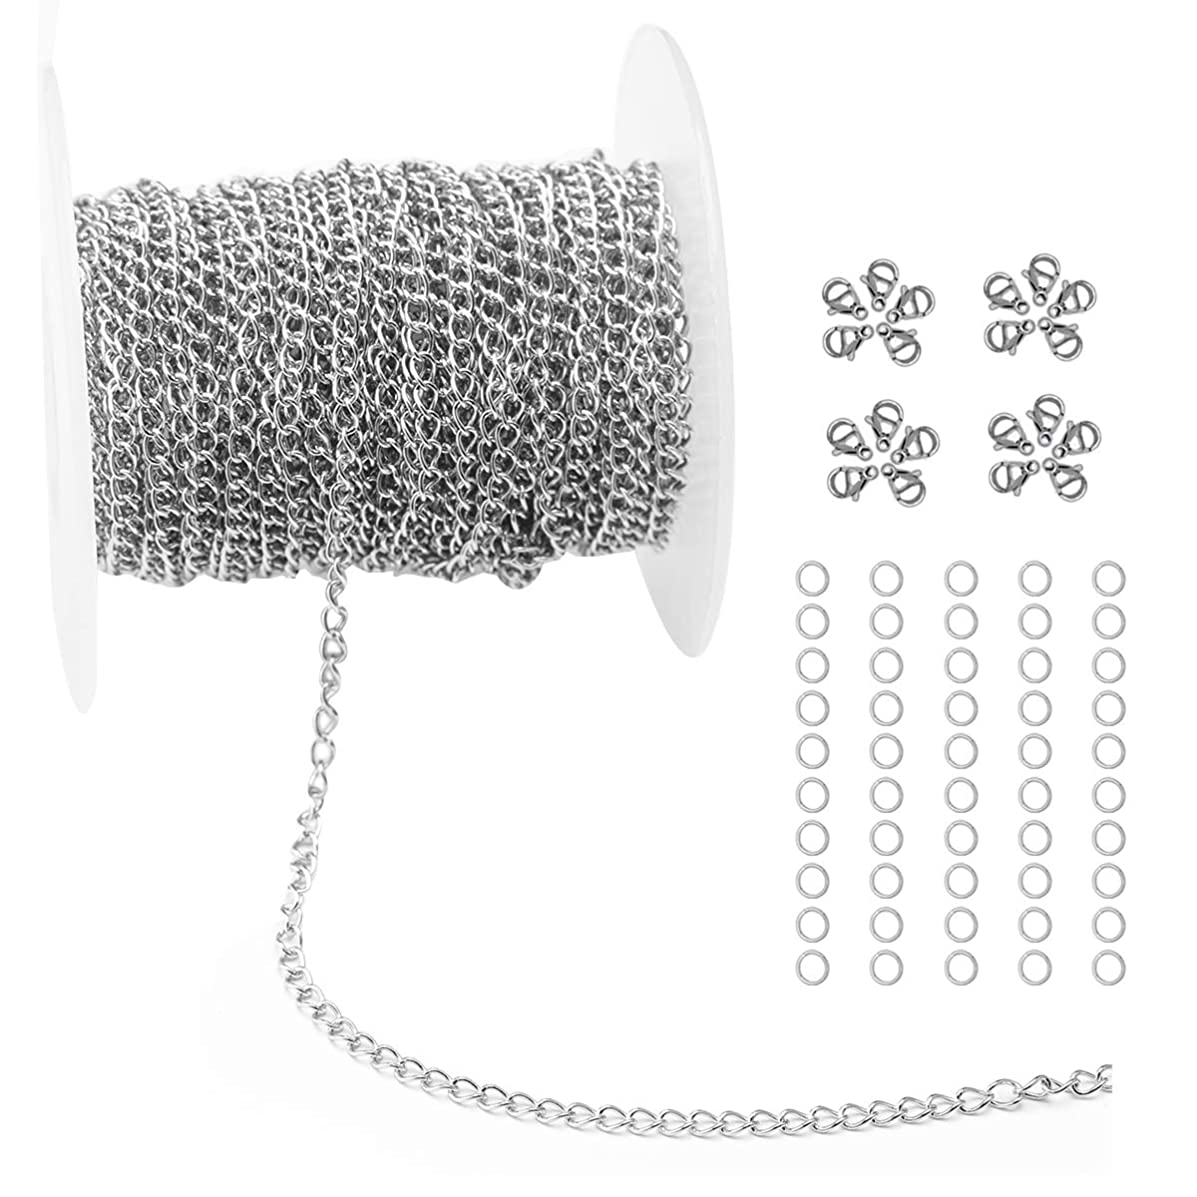 Tiparts 33FT Silver Cable Chains Stainless Steel Extender Chains Link Necklace Bulk for Jewelry Making with 20 Lobster Clasps and 50 Jump Rings (Silver, 2.5mm)